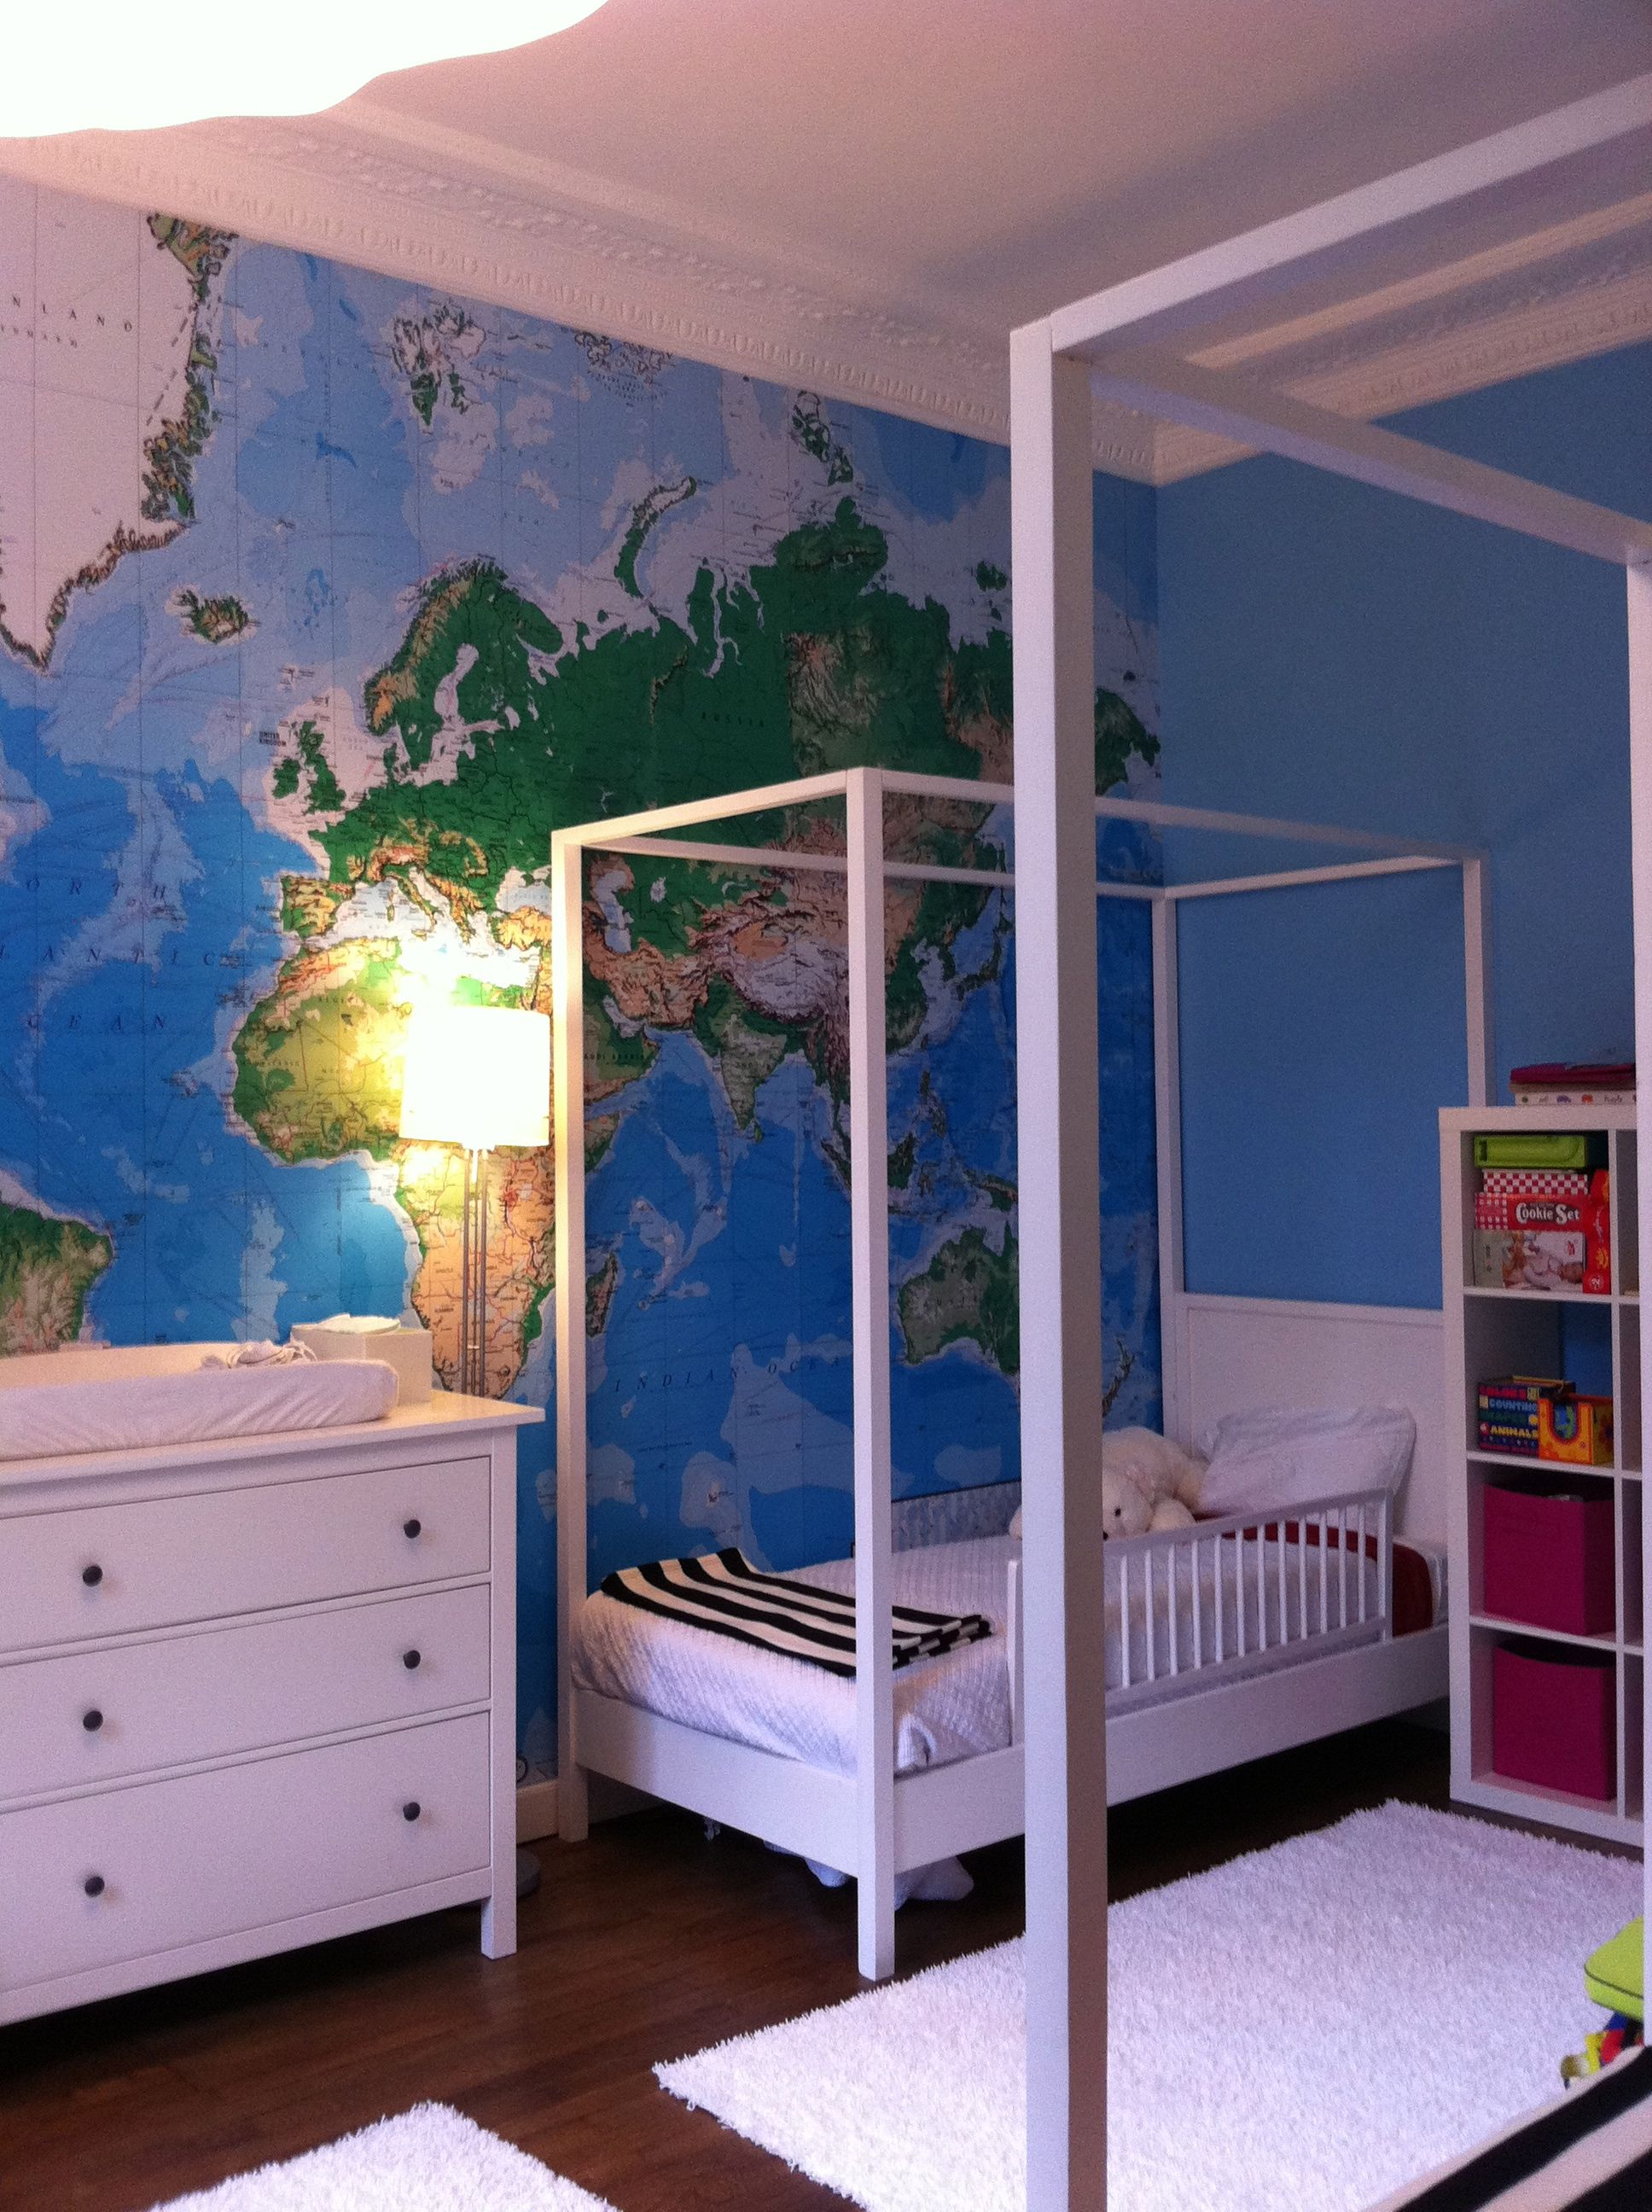 Kids Room Wallpaper Designs: White Furniture With Giant World Map Wallpaper